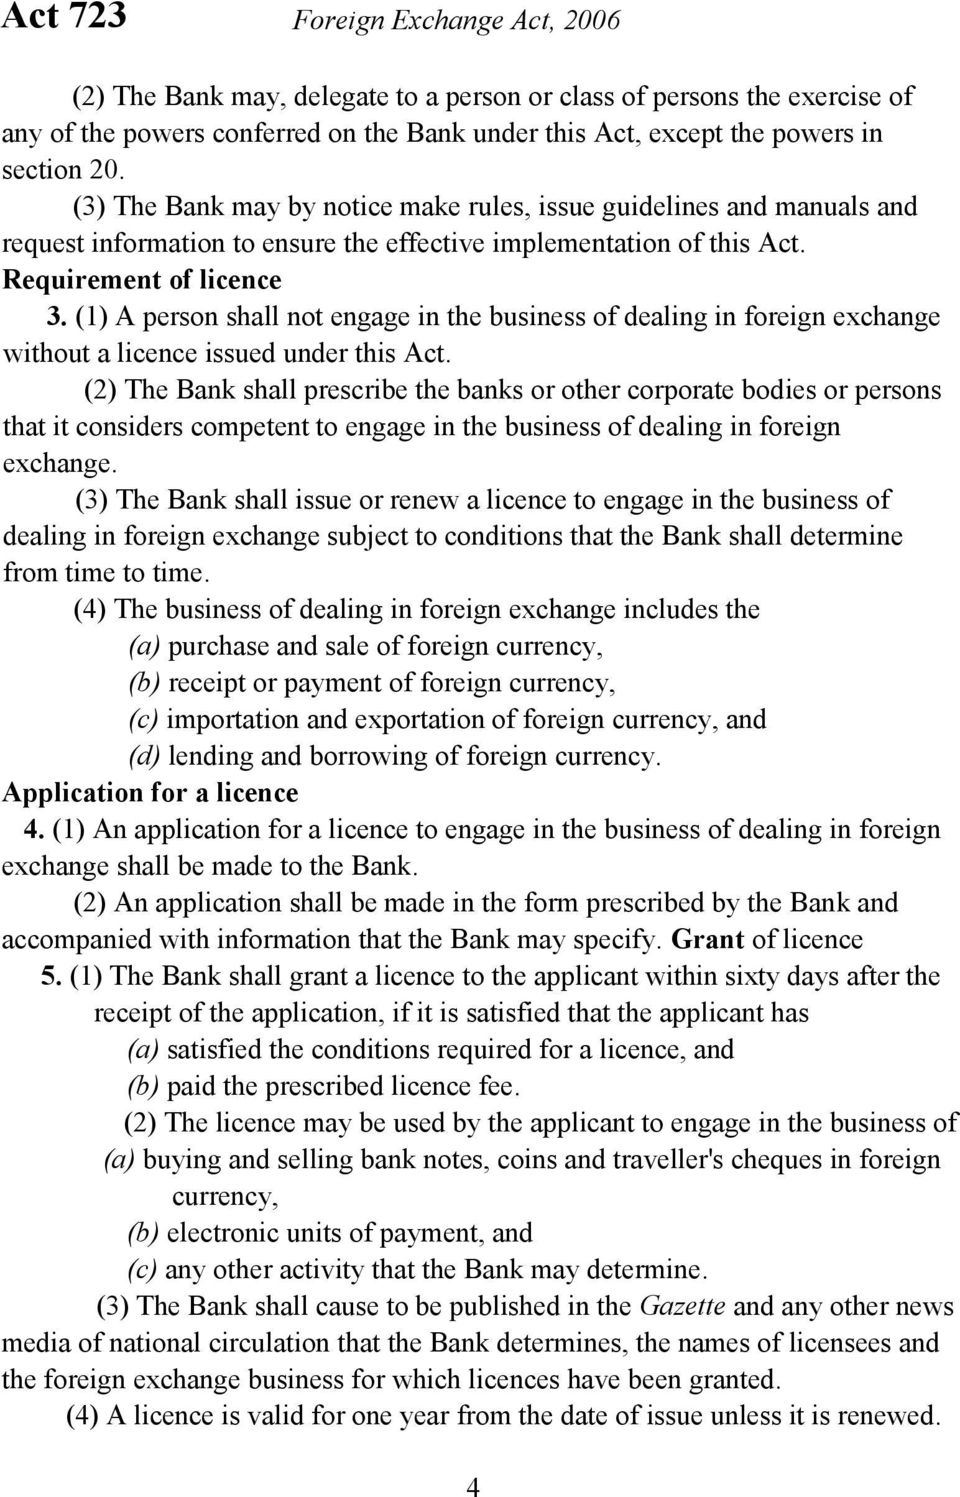 (1) A person shall not engage in the business of dealing in foreign exchange without a licence issued under this Act.